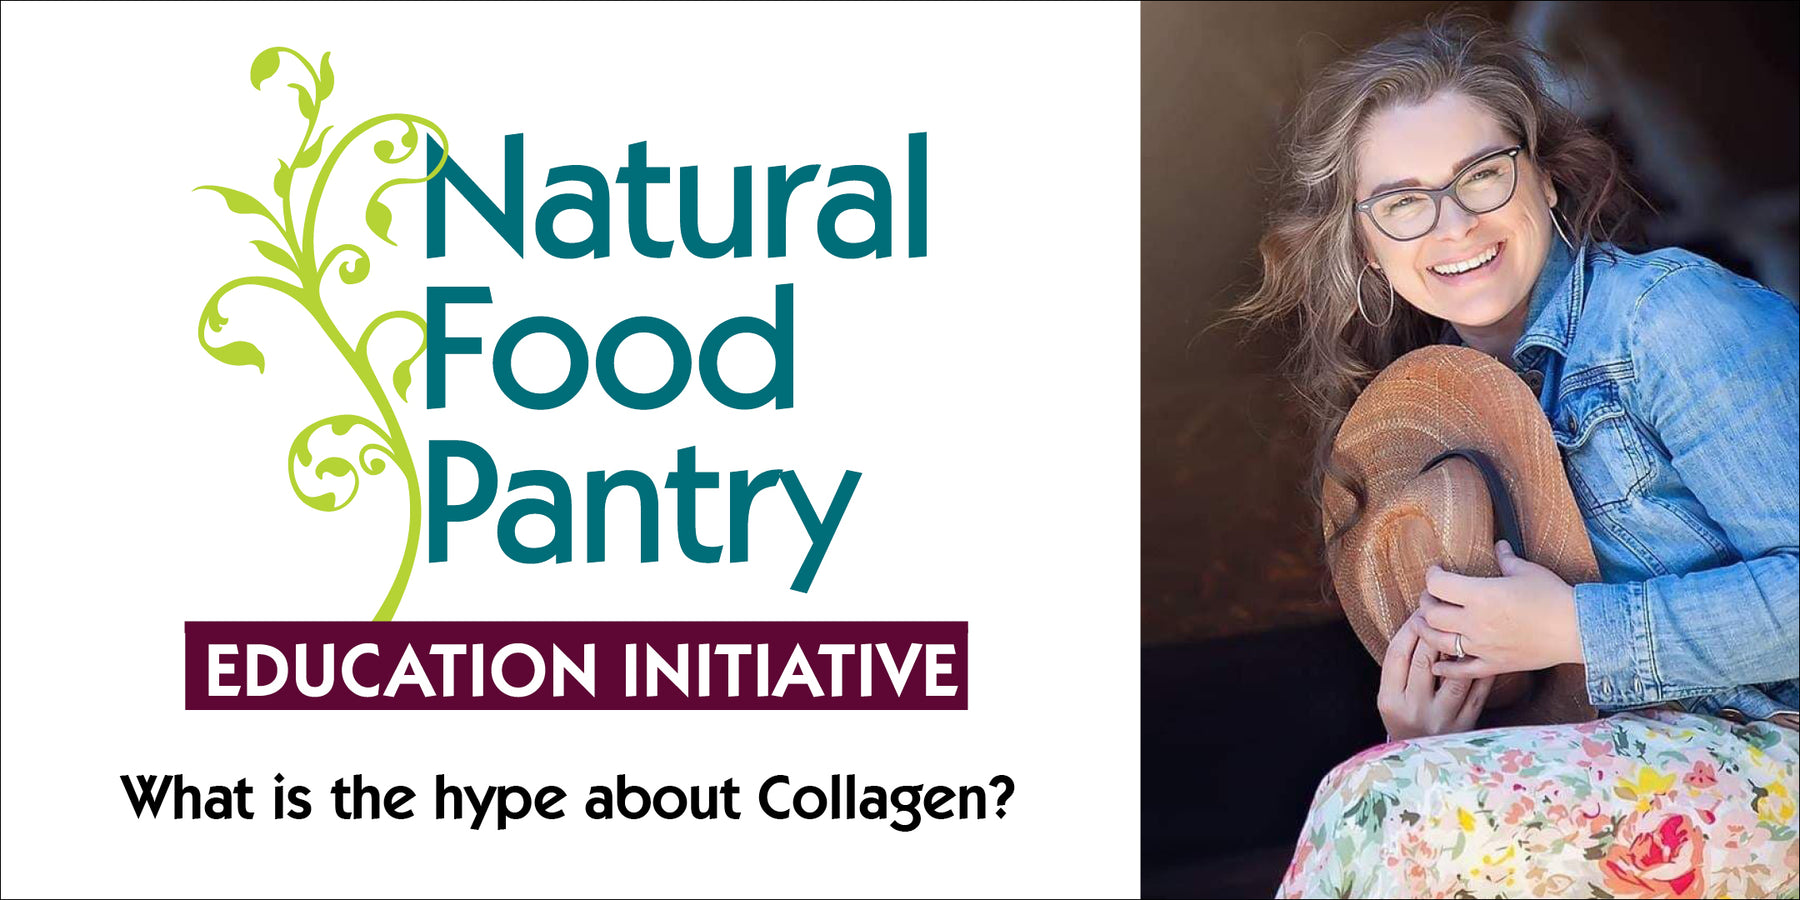 Jul 30: What is the hype about Collagen?